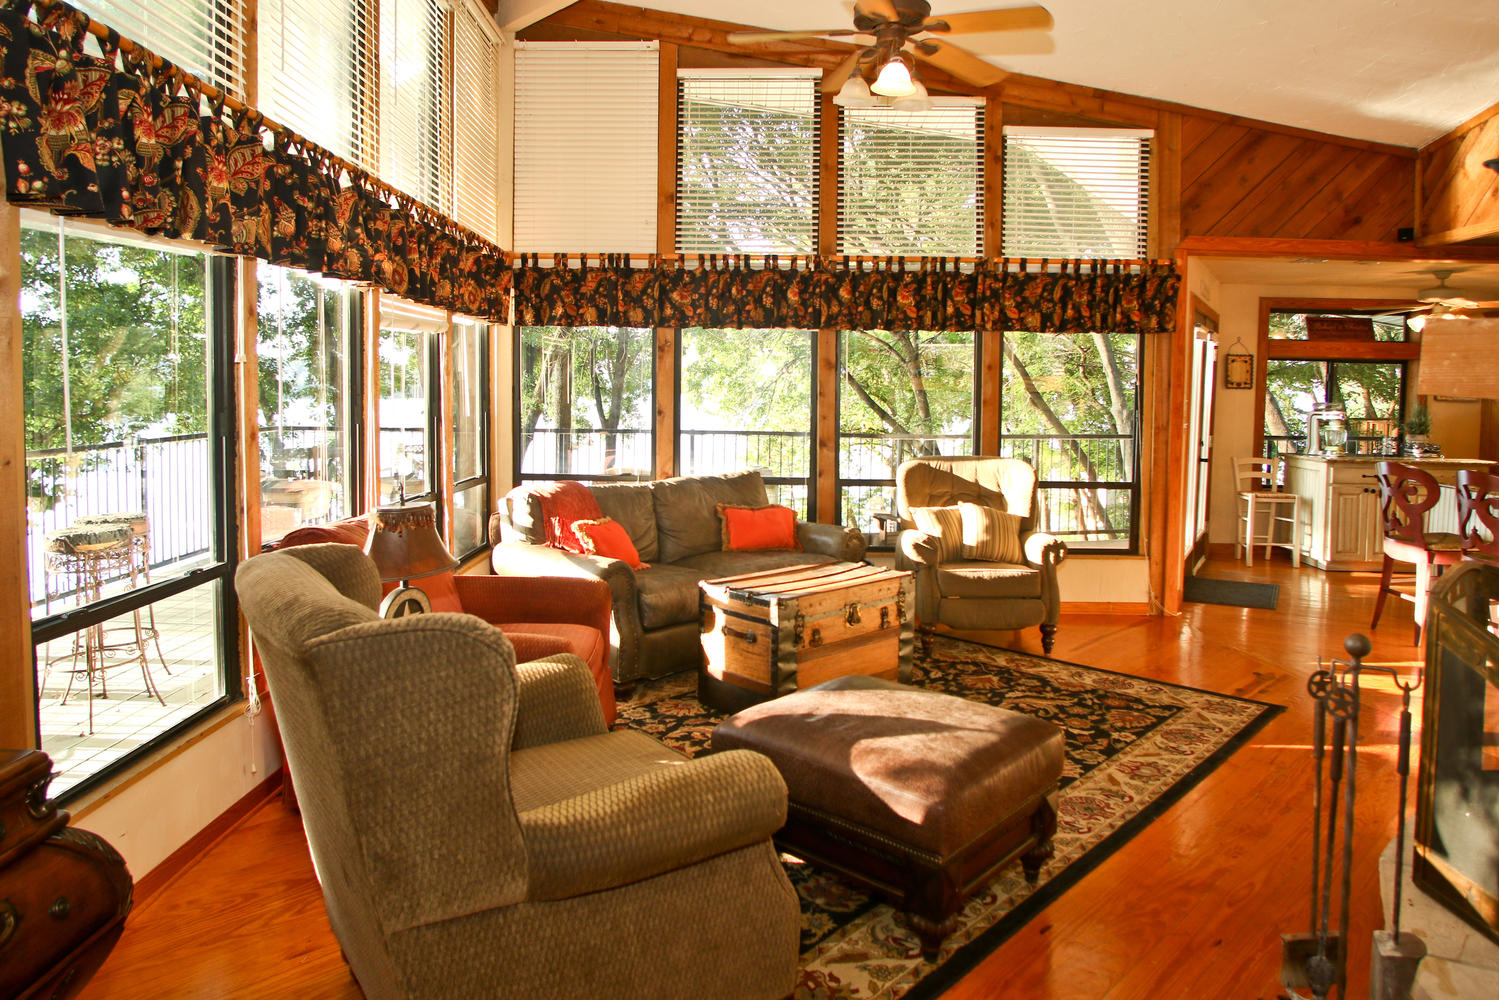 Walls of windows to let the outdoors in